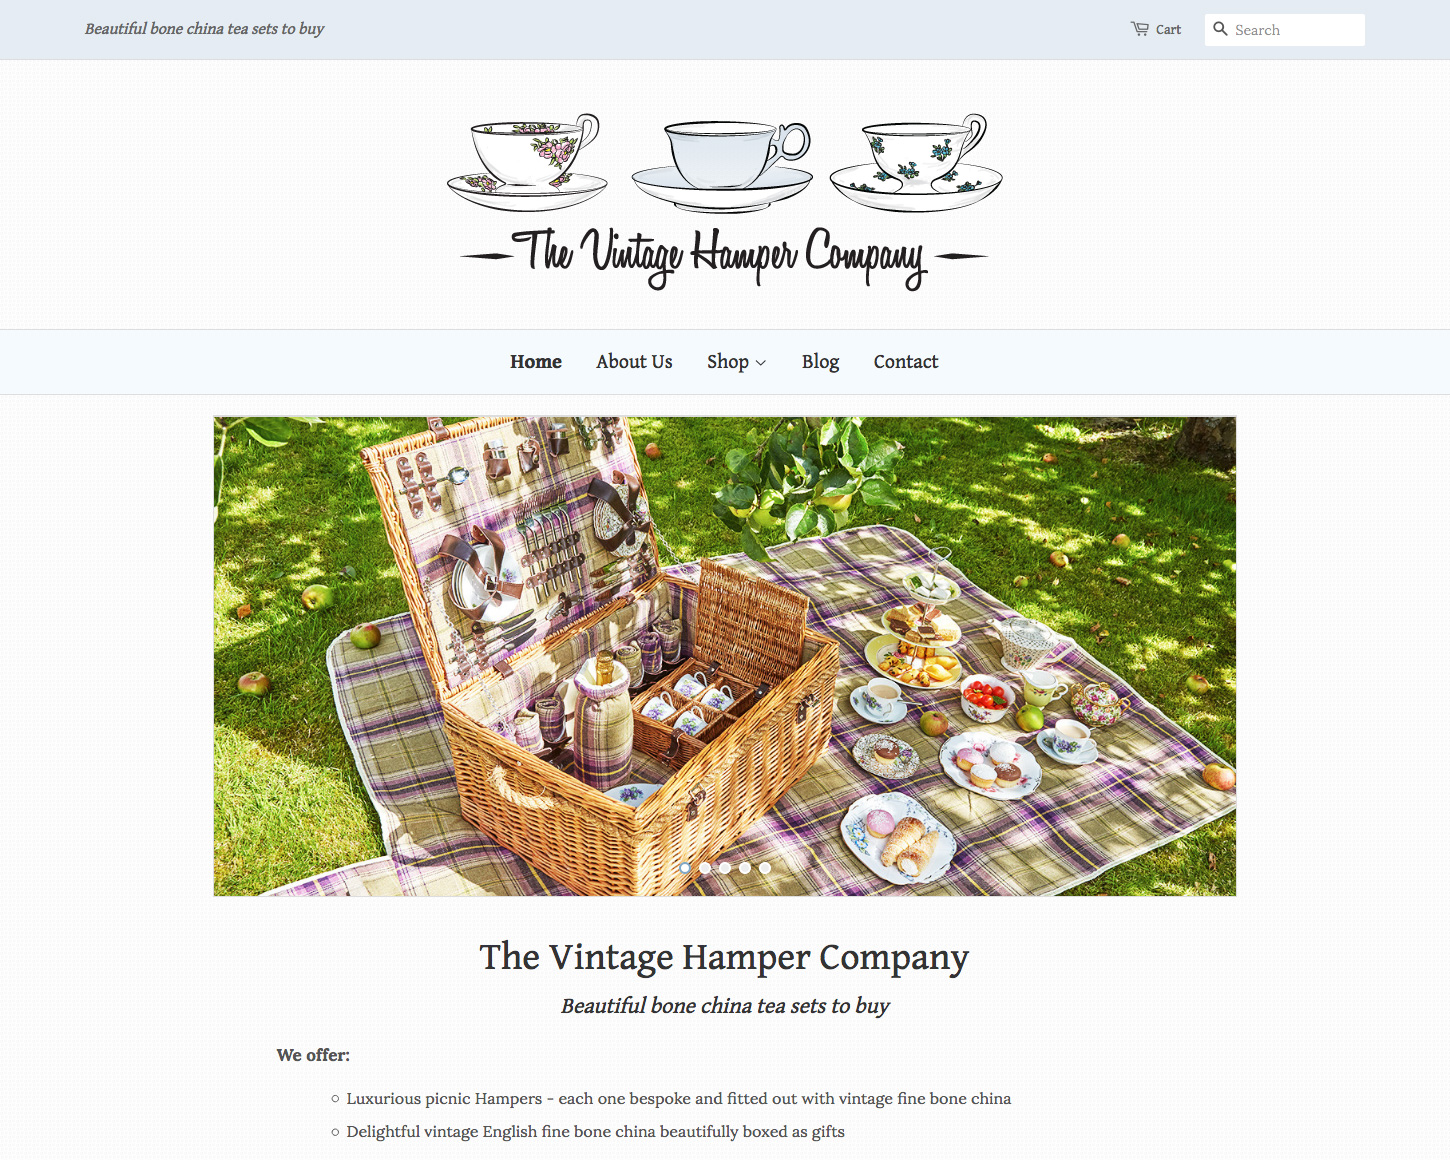 The Vintage Hamper Company